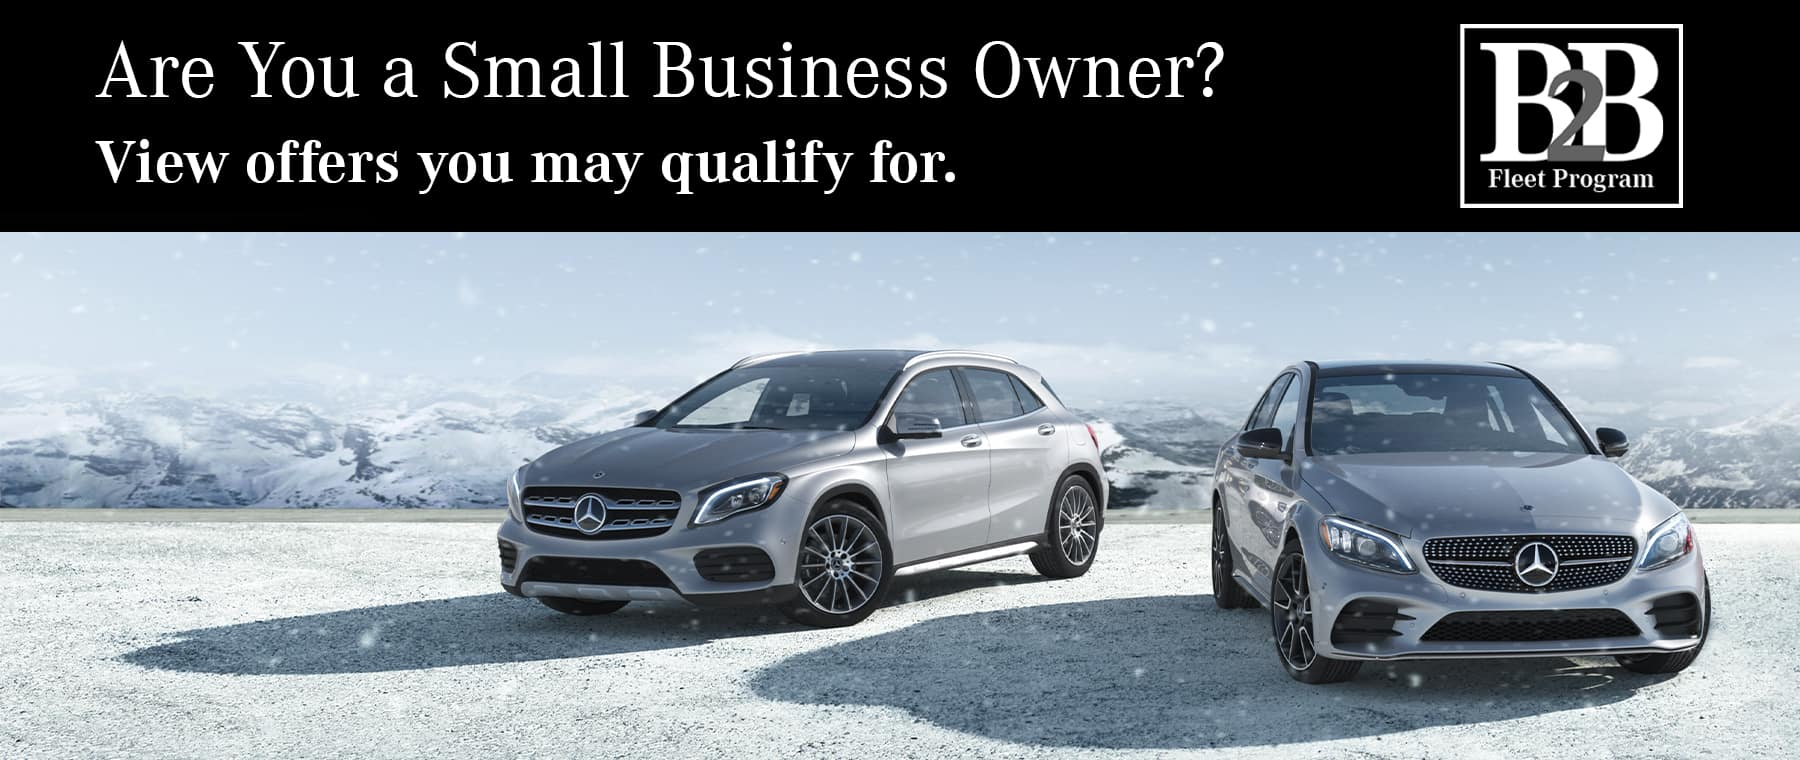 Mercedes Benz Of New Rochelle Luxury Auto Dealer And Service